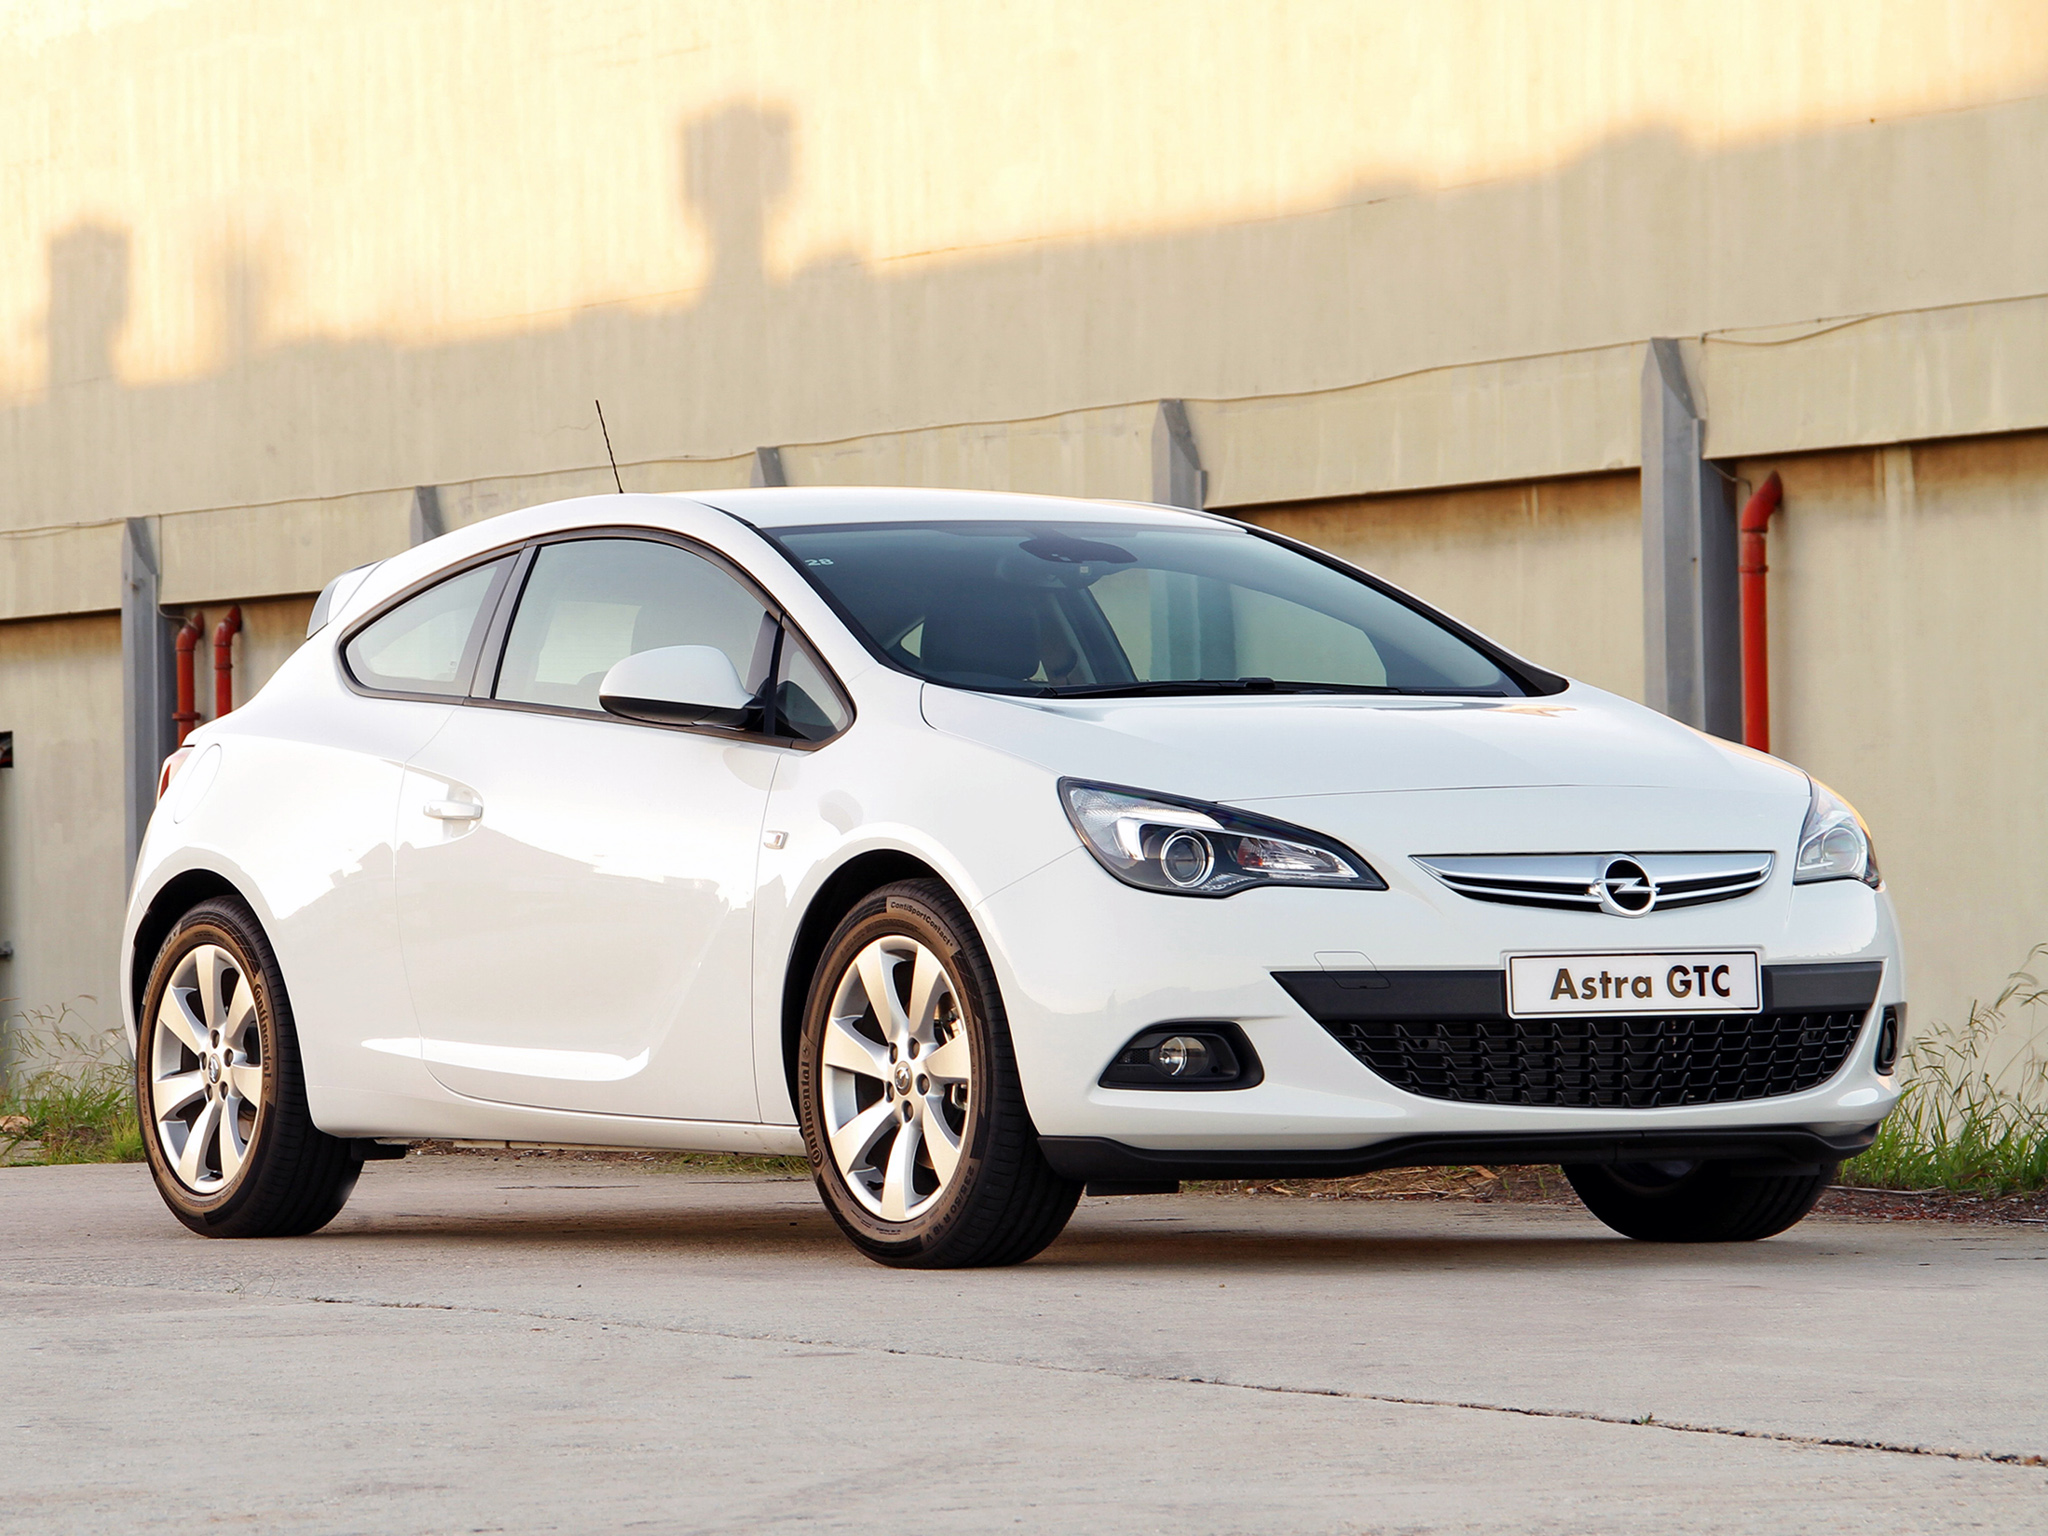 opel astra gtc picture 90407 opel photo gallery. Black Bedroom Furniture Sets. Home Design Ideas